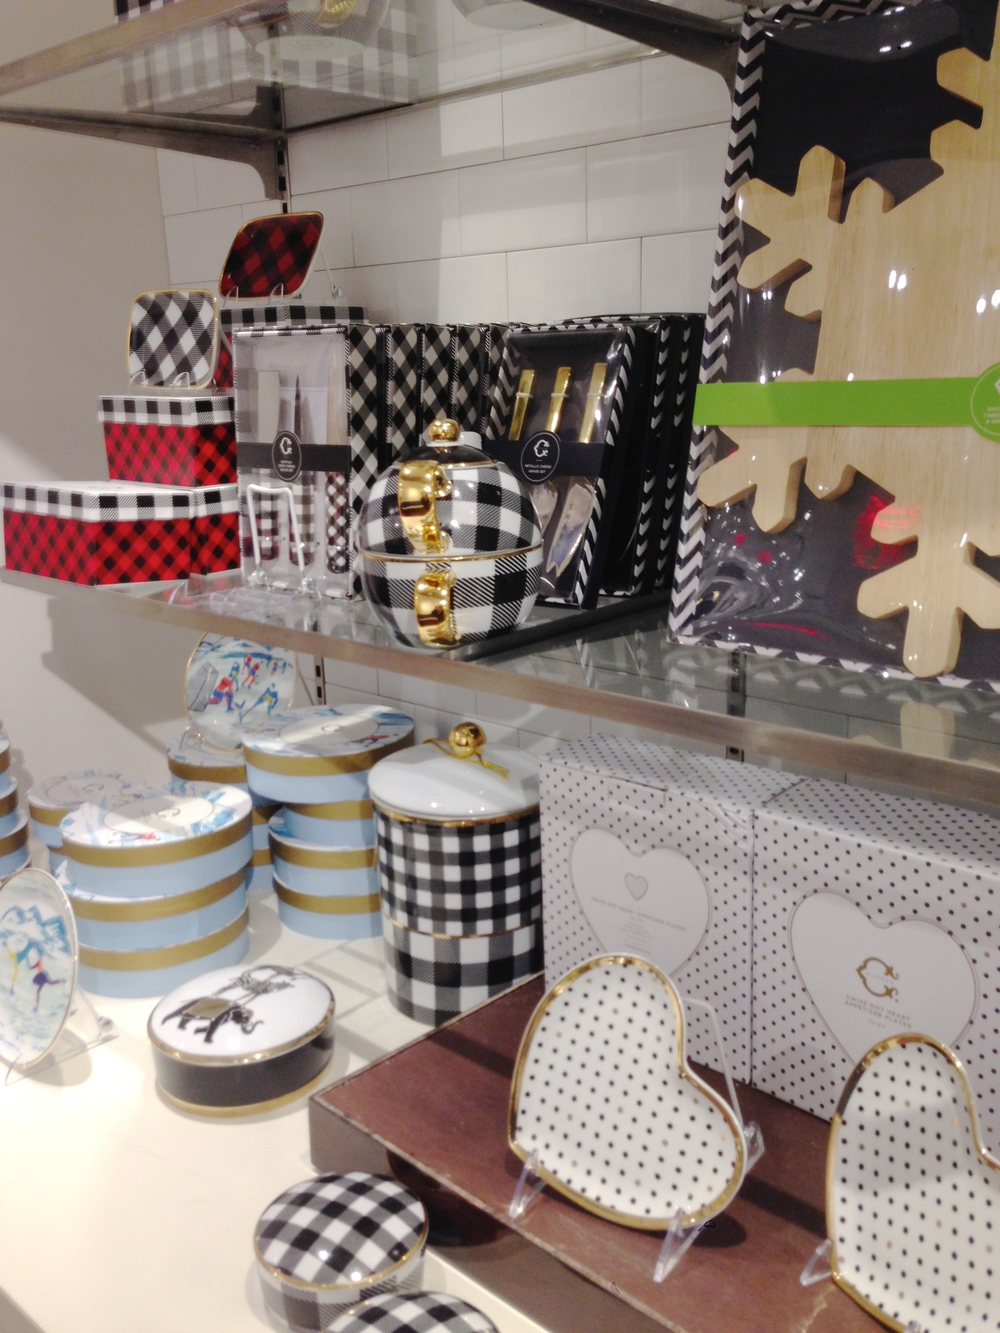 These plaid dishes are adorable! The teapot+mug,  would be great if gifted with some artisanal teas.